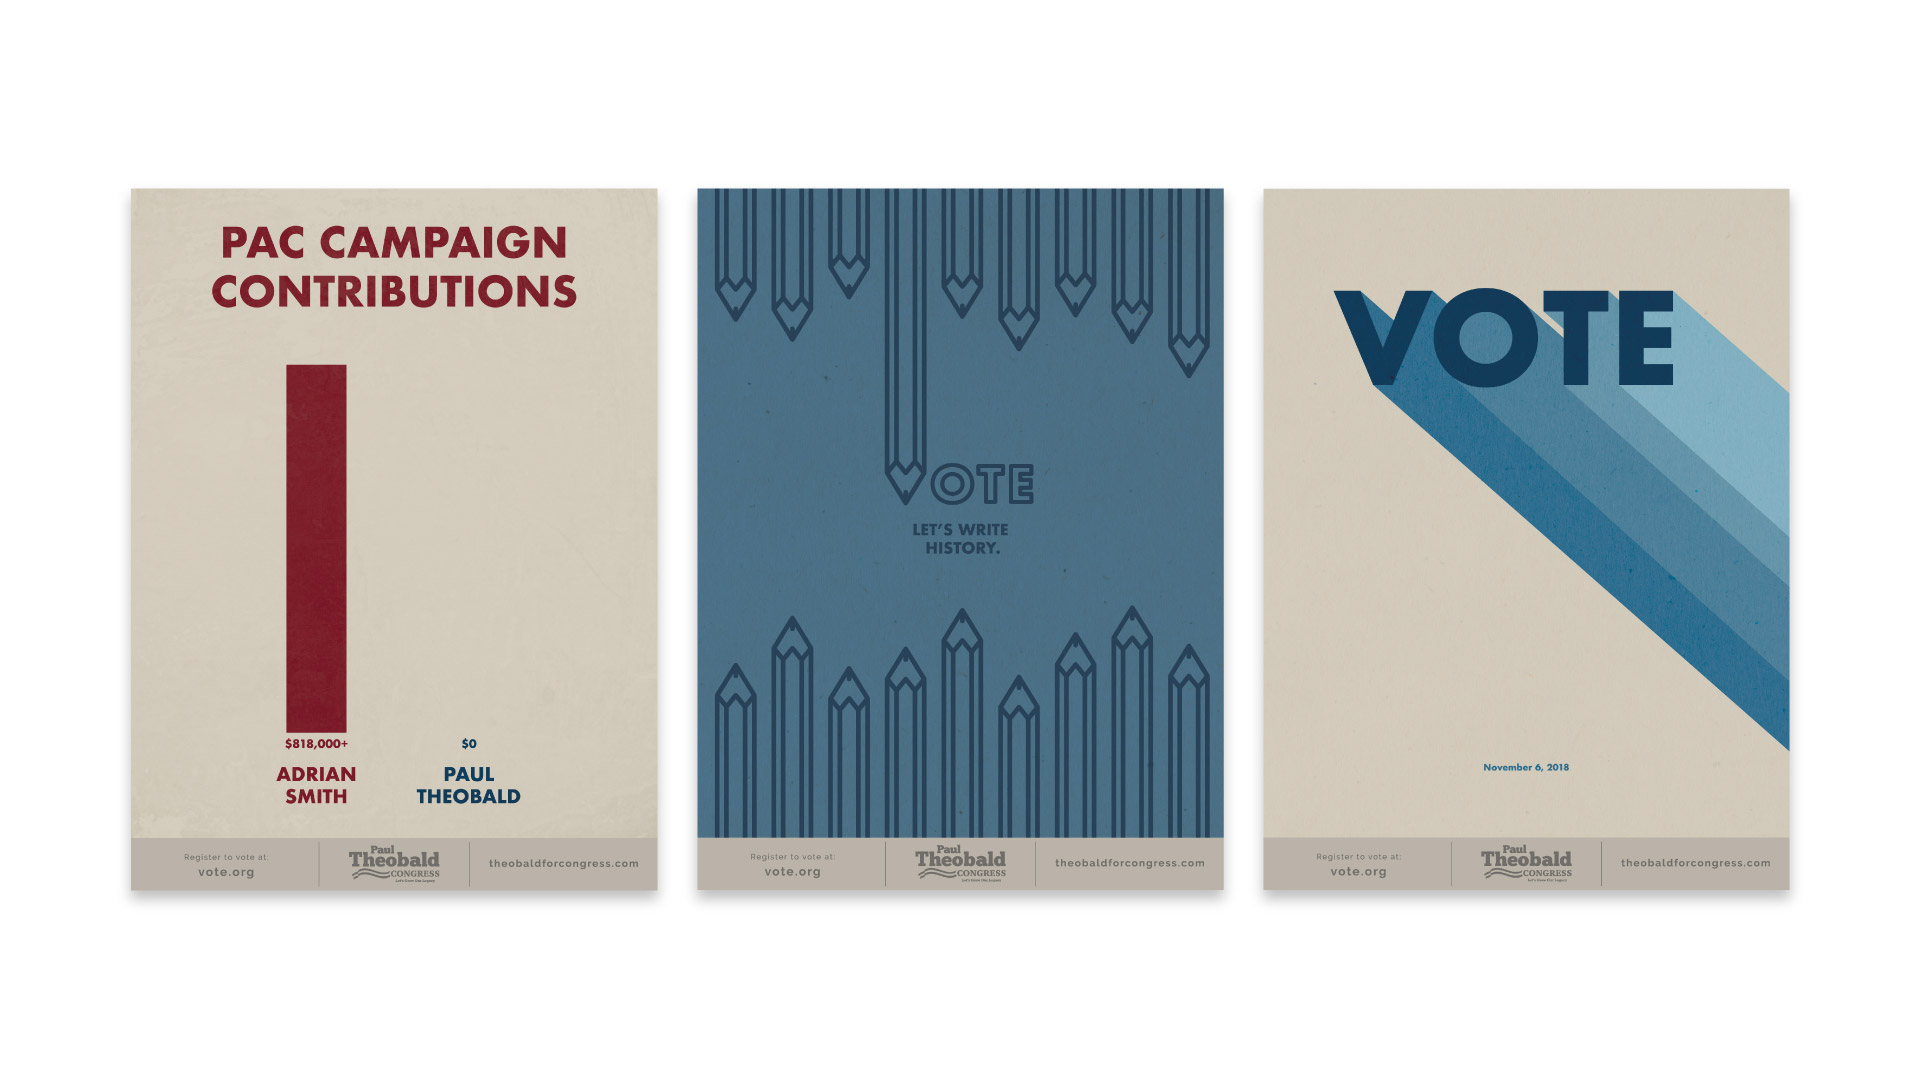 877's promotional print pieces for Paul Theobald's campaign